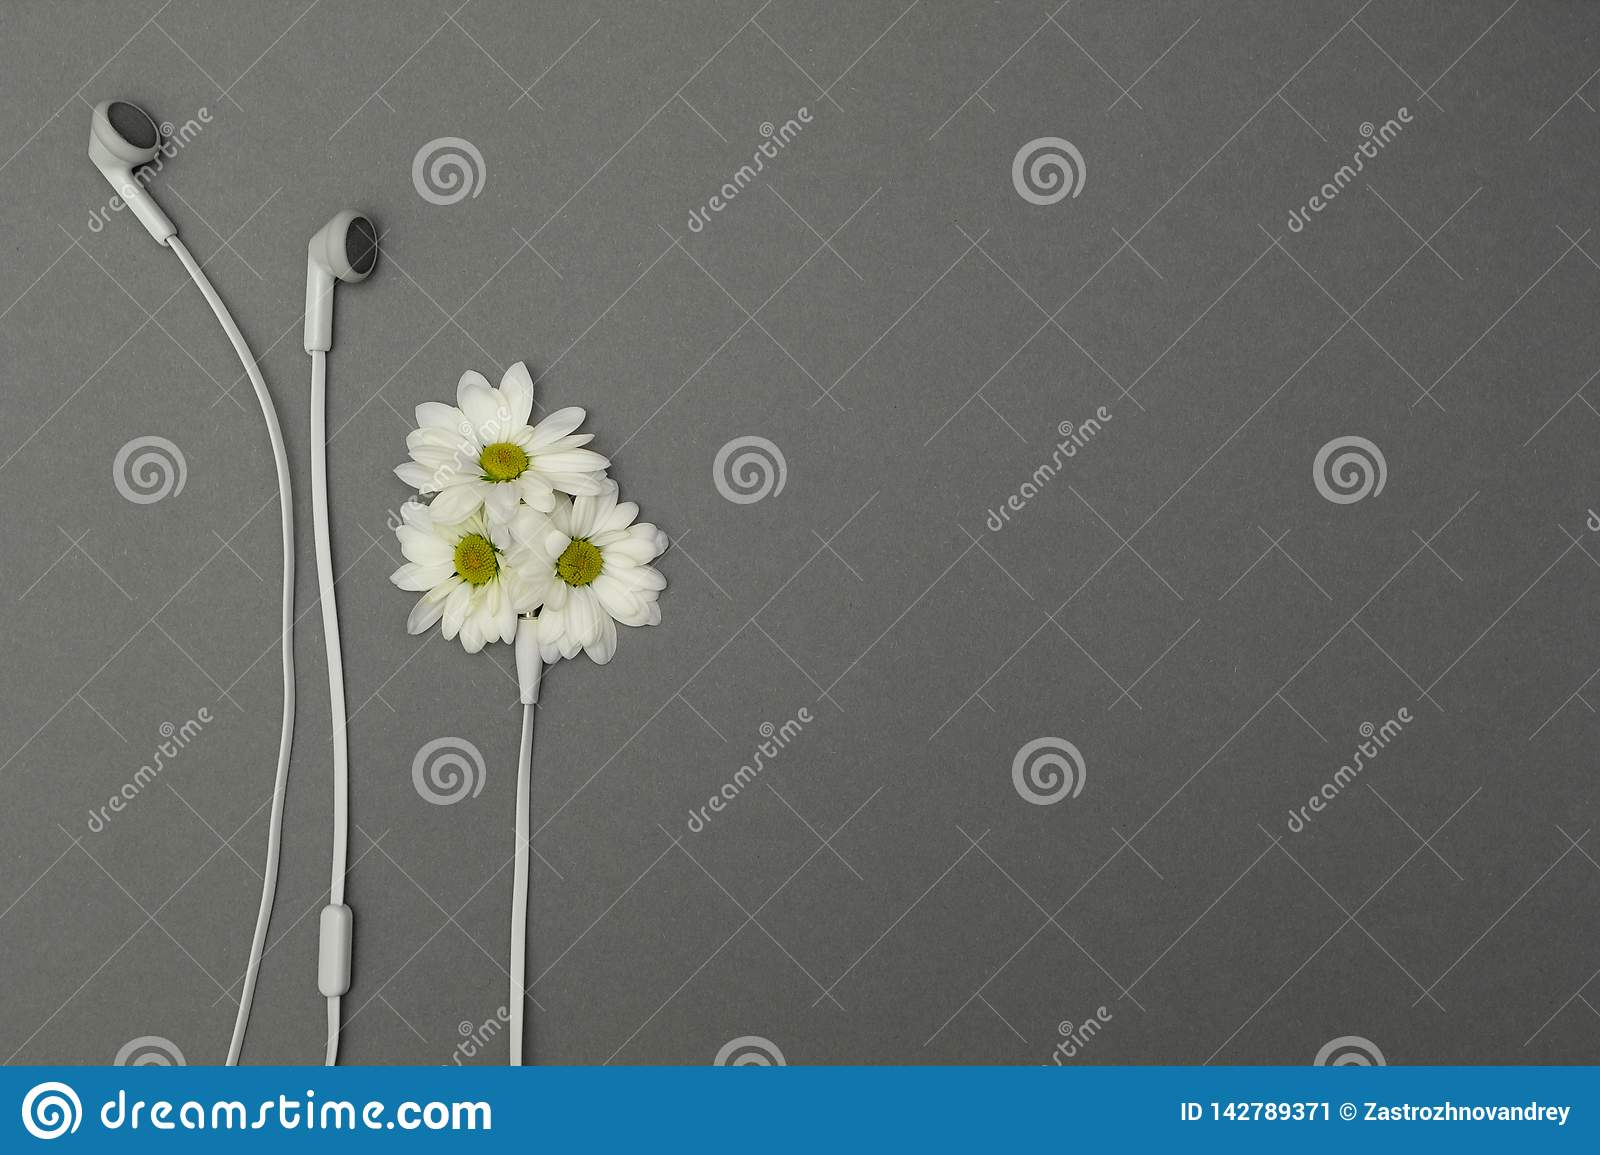 Flowers and headphones, place for text